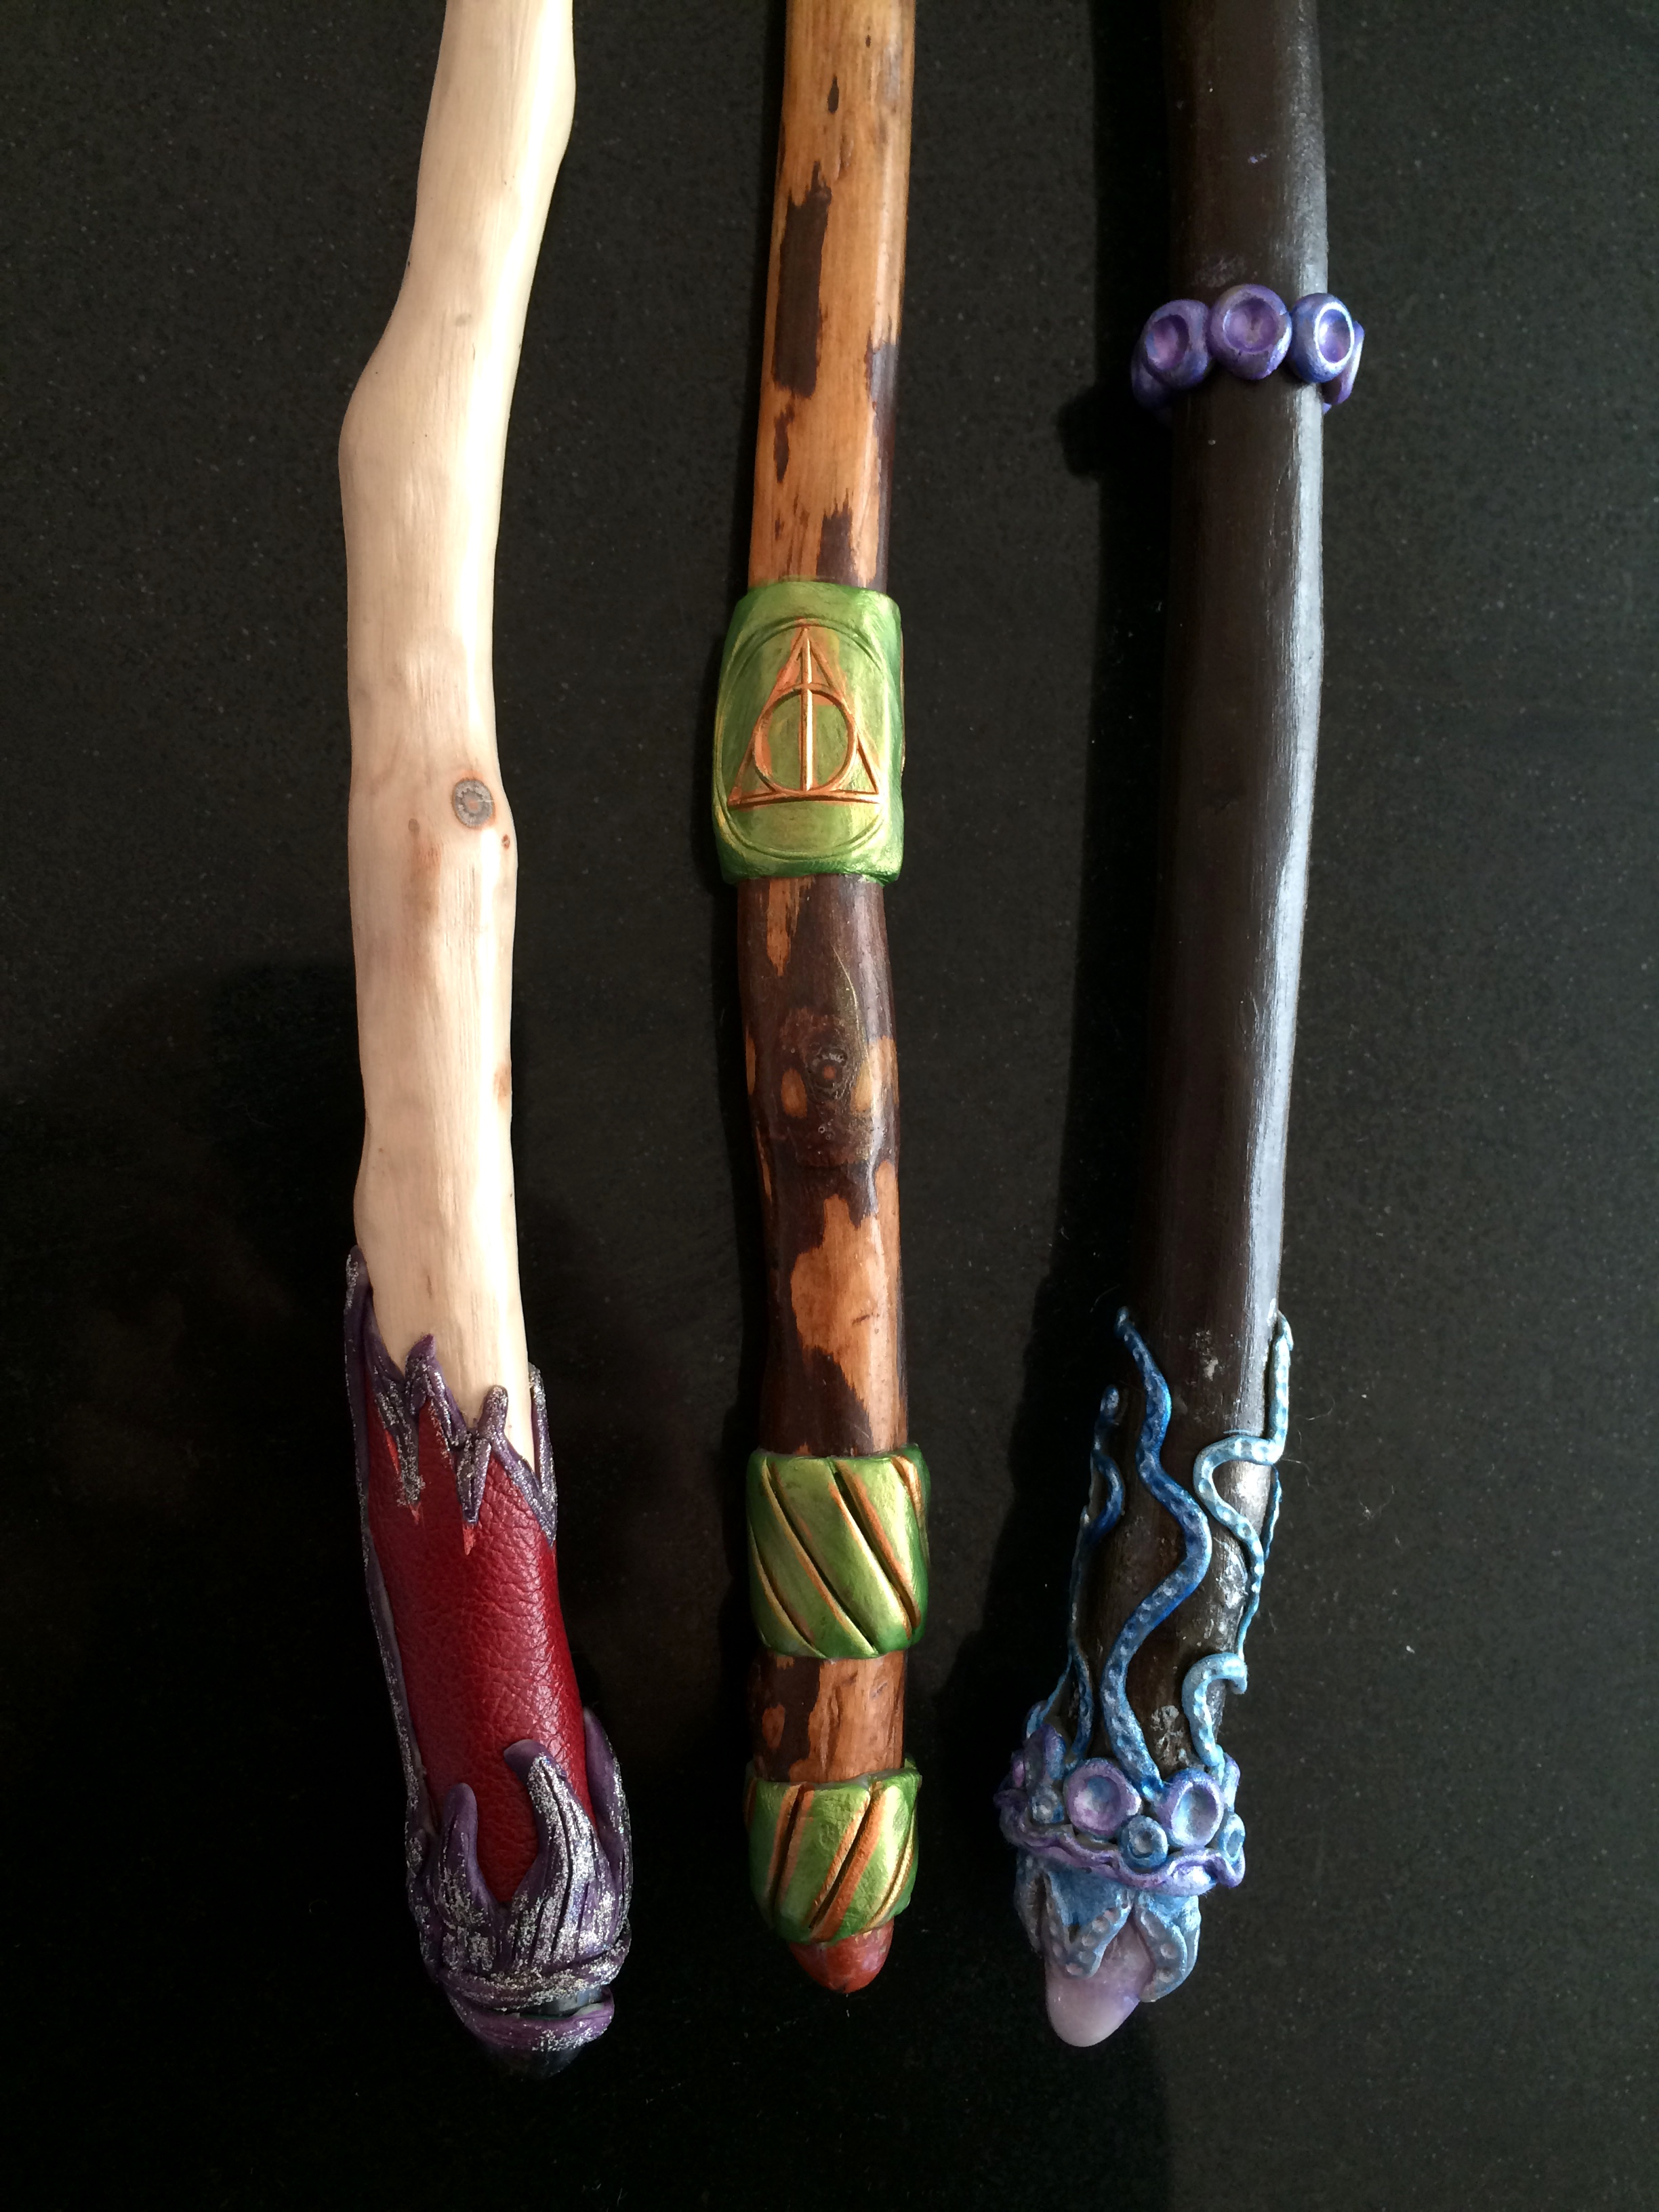 The work of master wandmaker Kirstin Hobbliknob, Headmistress of Fiddleheart Academy.